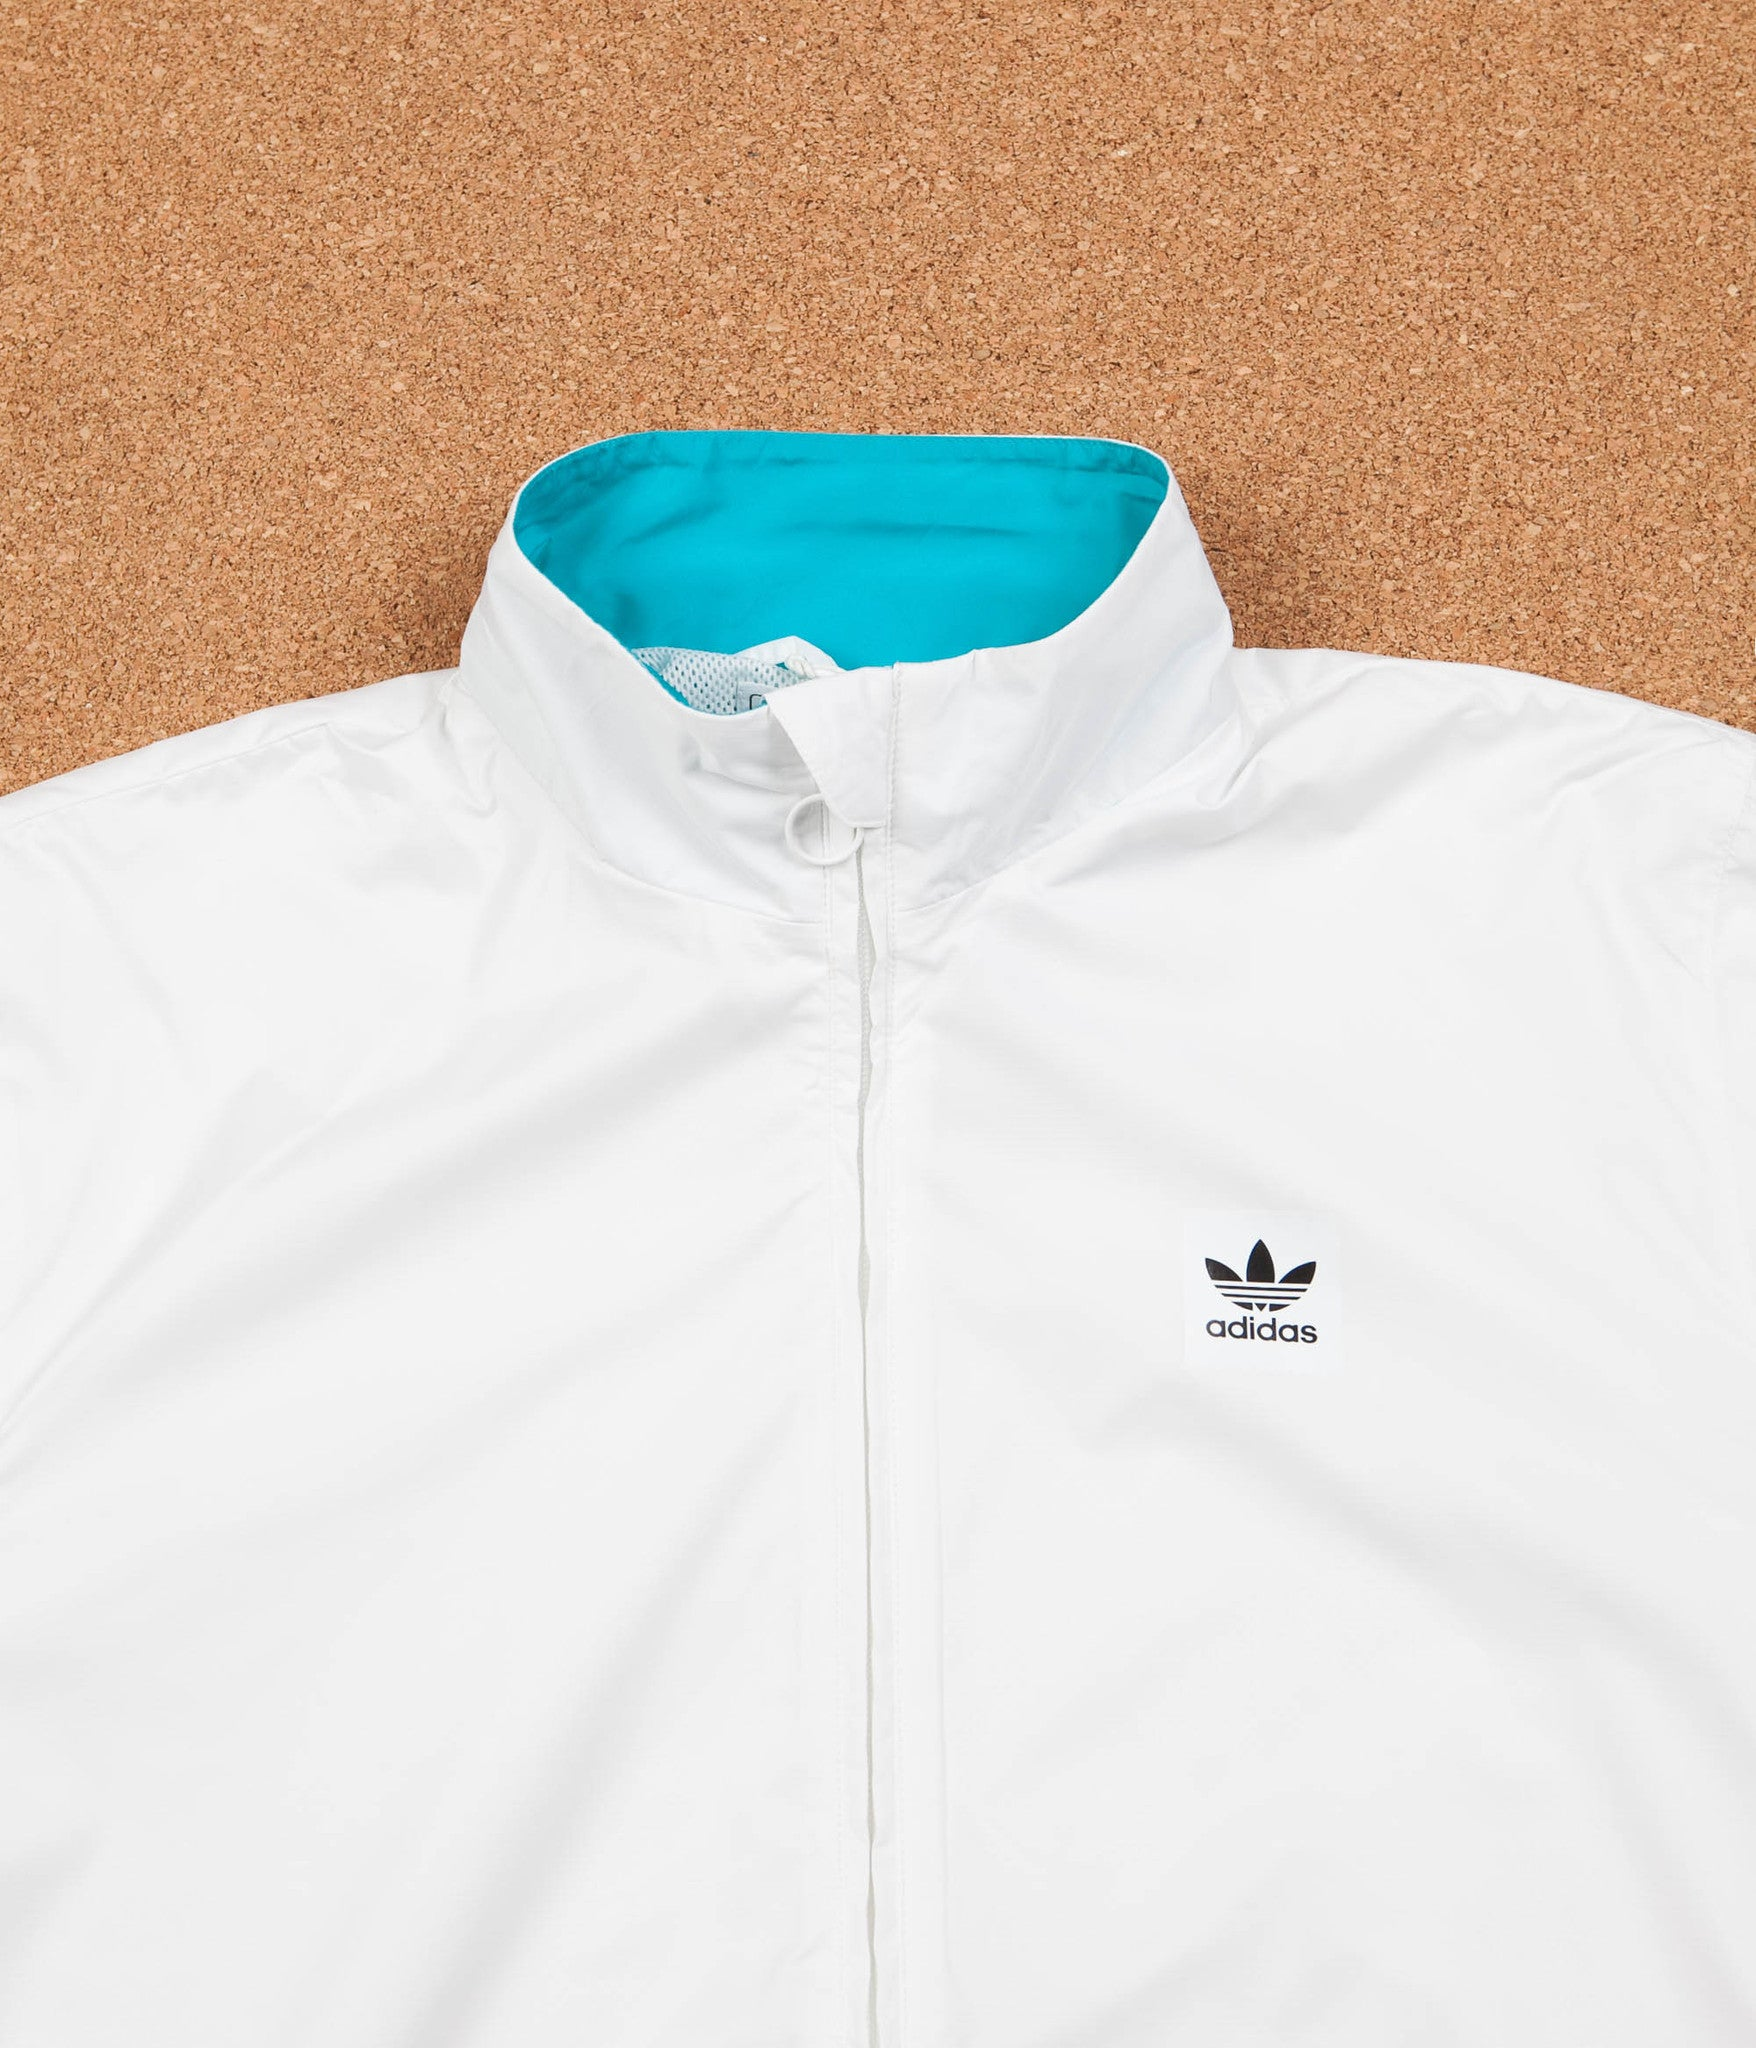 Adidas Courtside Jacket - White / Energy Blue / Energy / Black